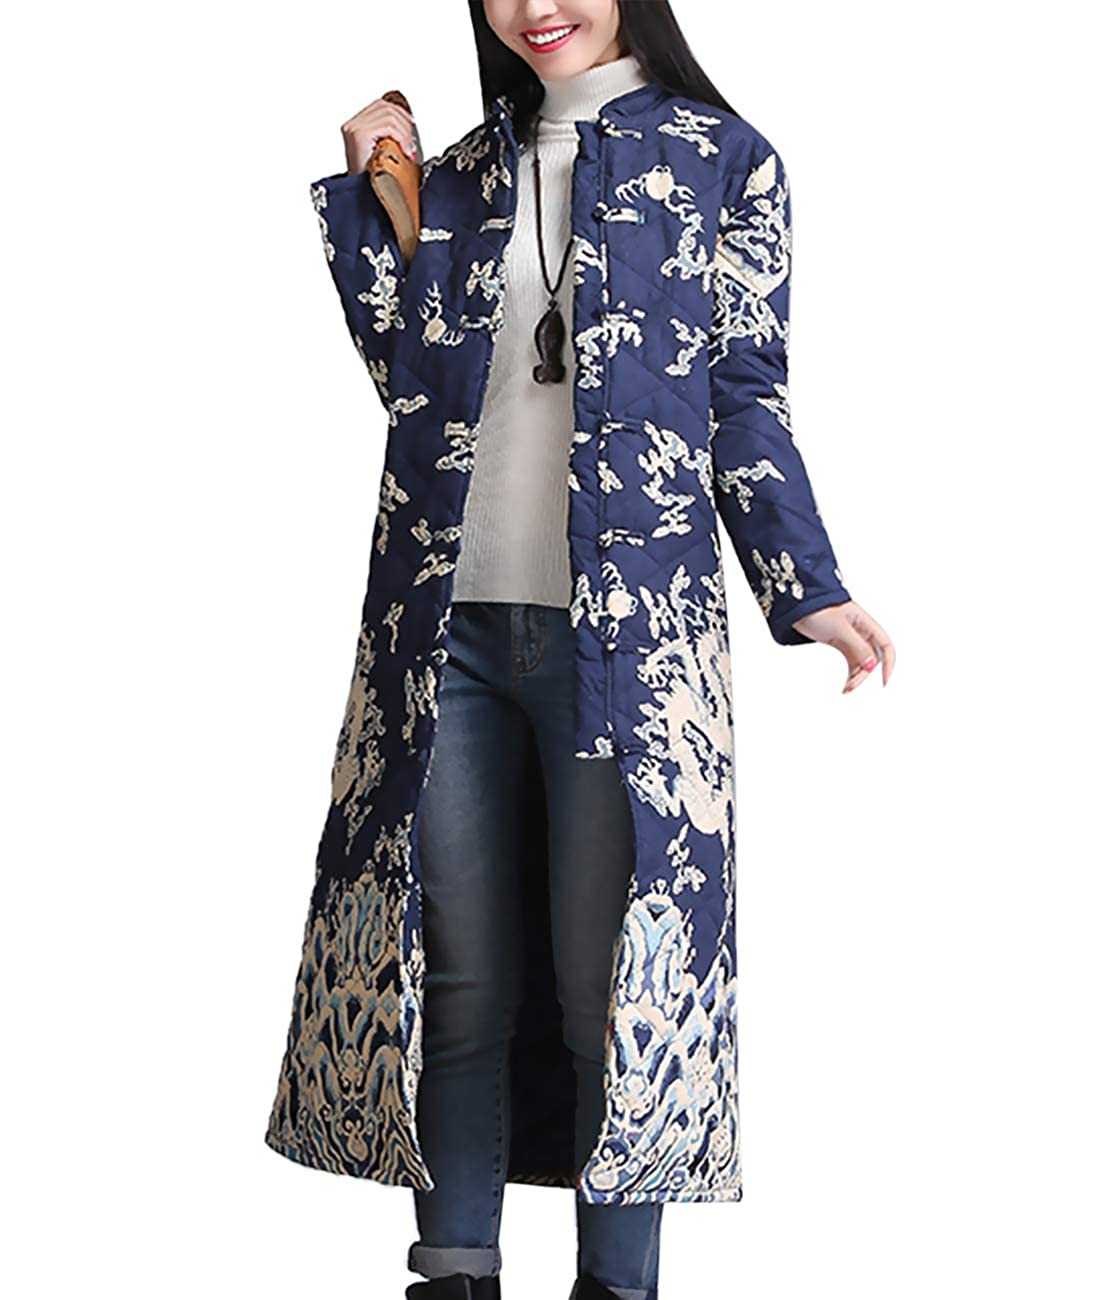 Women's Traditional Chinese Qipao Long Navy Quilted Jacket